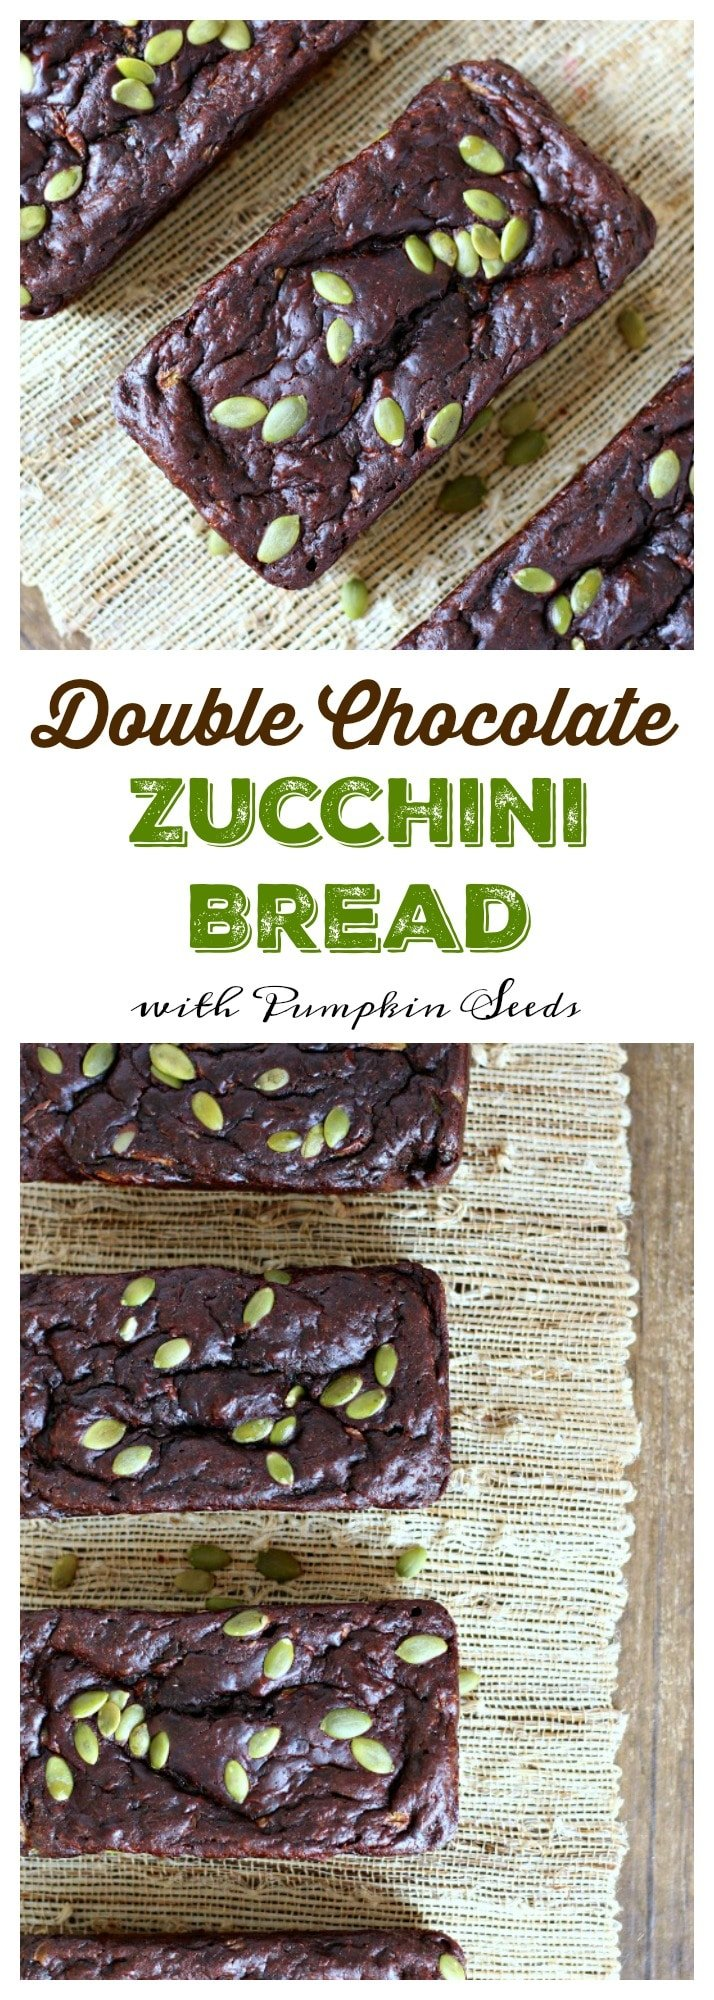 This soft, rich and moist double chocolate zucchini bread is a delicious option for breakfast and dessert! gardeninthekitchen.com